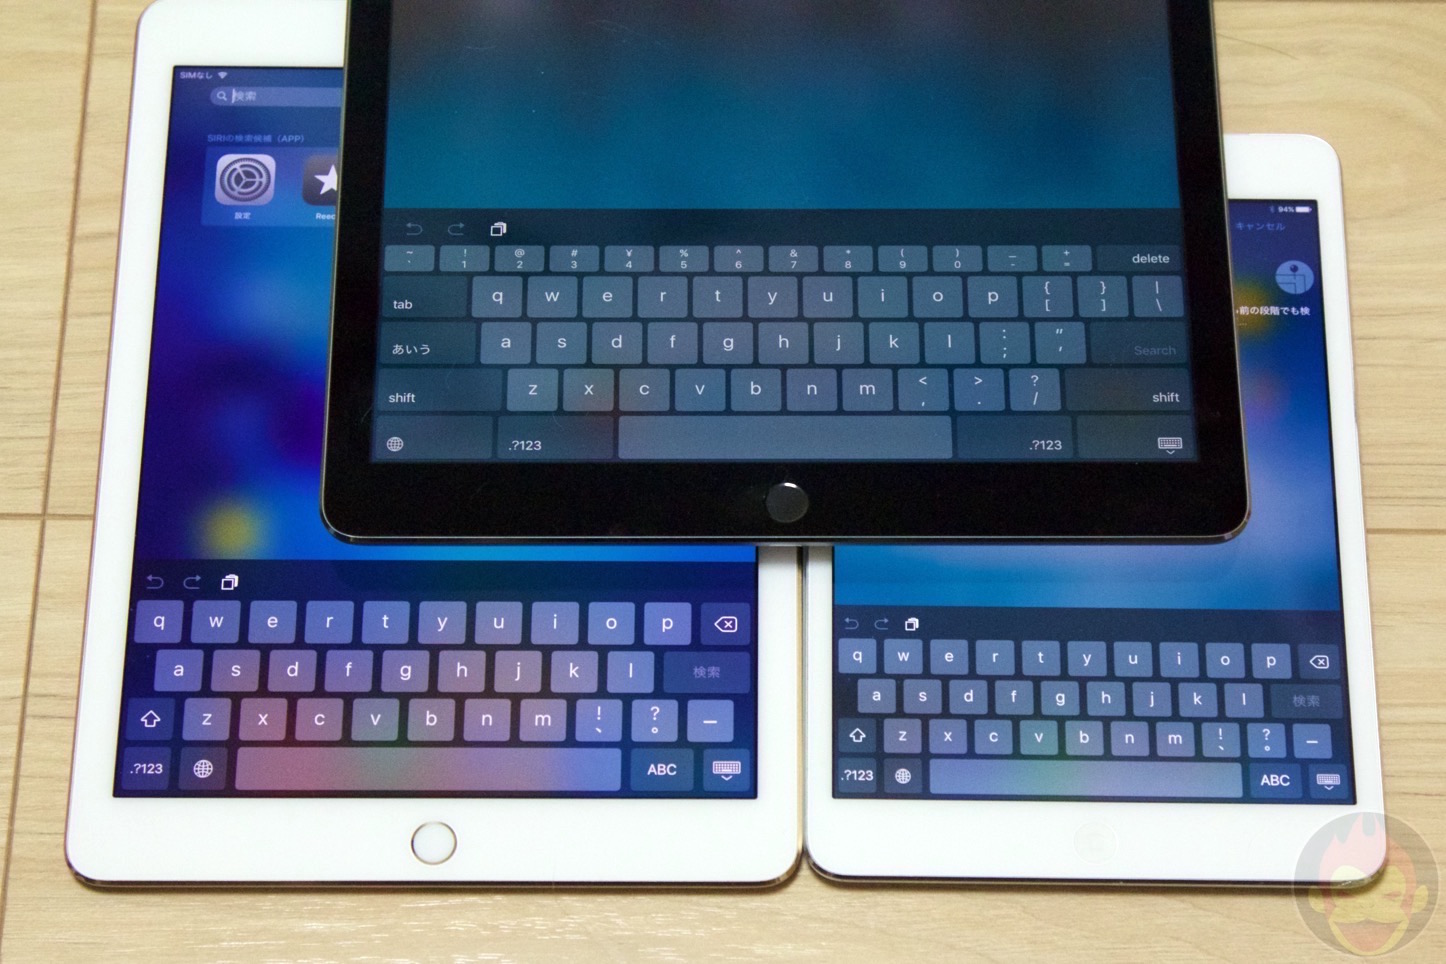 IPad Pro Air2 mini2 Comparison